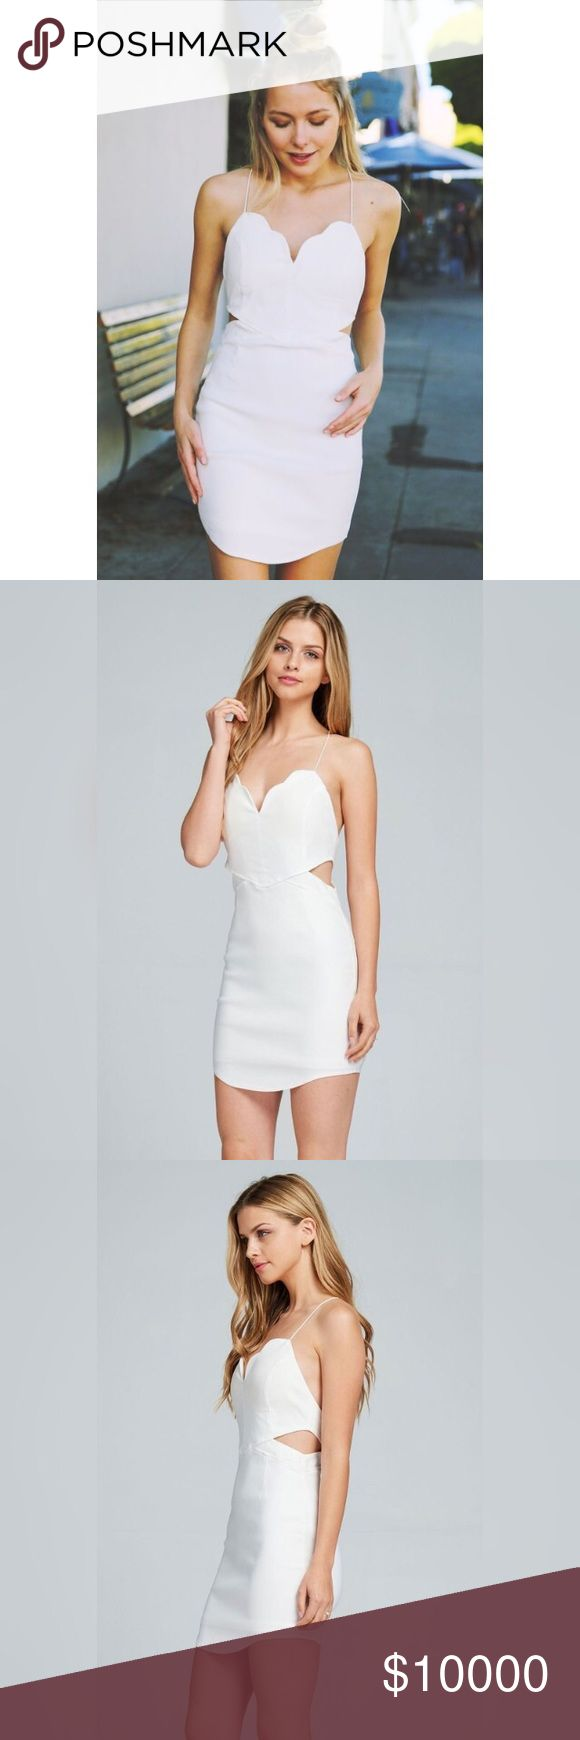 White open back bodycon dress Offers welcome.                                                                  • Knit open shoulder / open back party mini dress • Crossover back shoulder straps • Padded bra cups • Side cutouts • Zipper at back                                                                    97% cotton 3% spandex.                                                 💗I can also apply discounted shipping if requested in comments : ) Dresses Backless